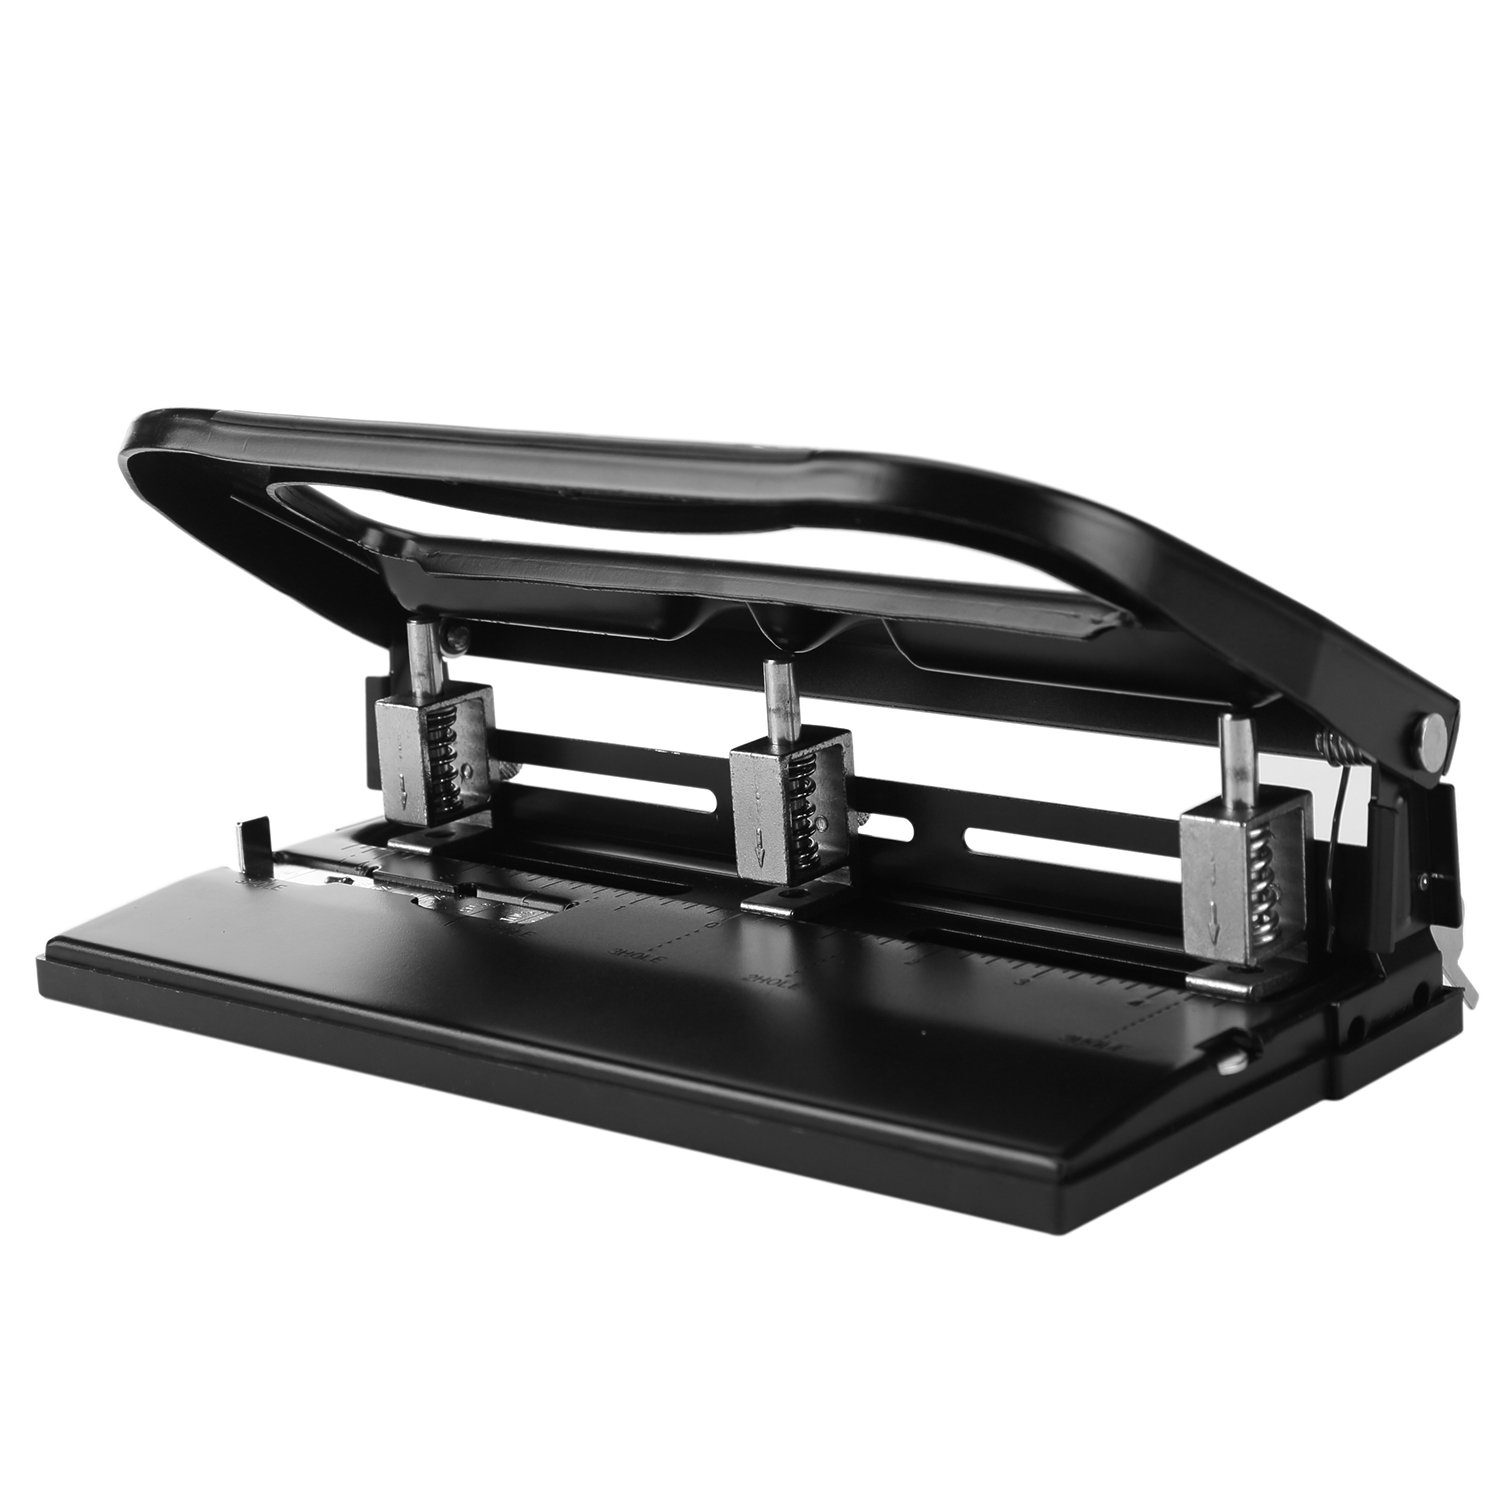 Heavy-Duty Adjustabl 11/40 2-3 Hole Punch, Low Force, 40 Sheets Punch Capacity Black Integrated Paper Guide for Hole Punching Consistency